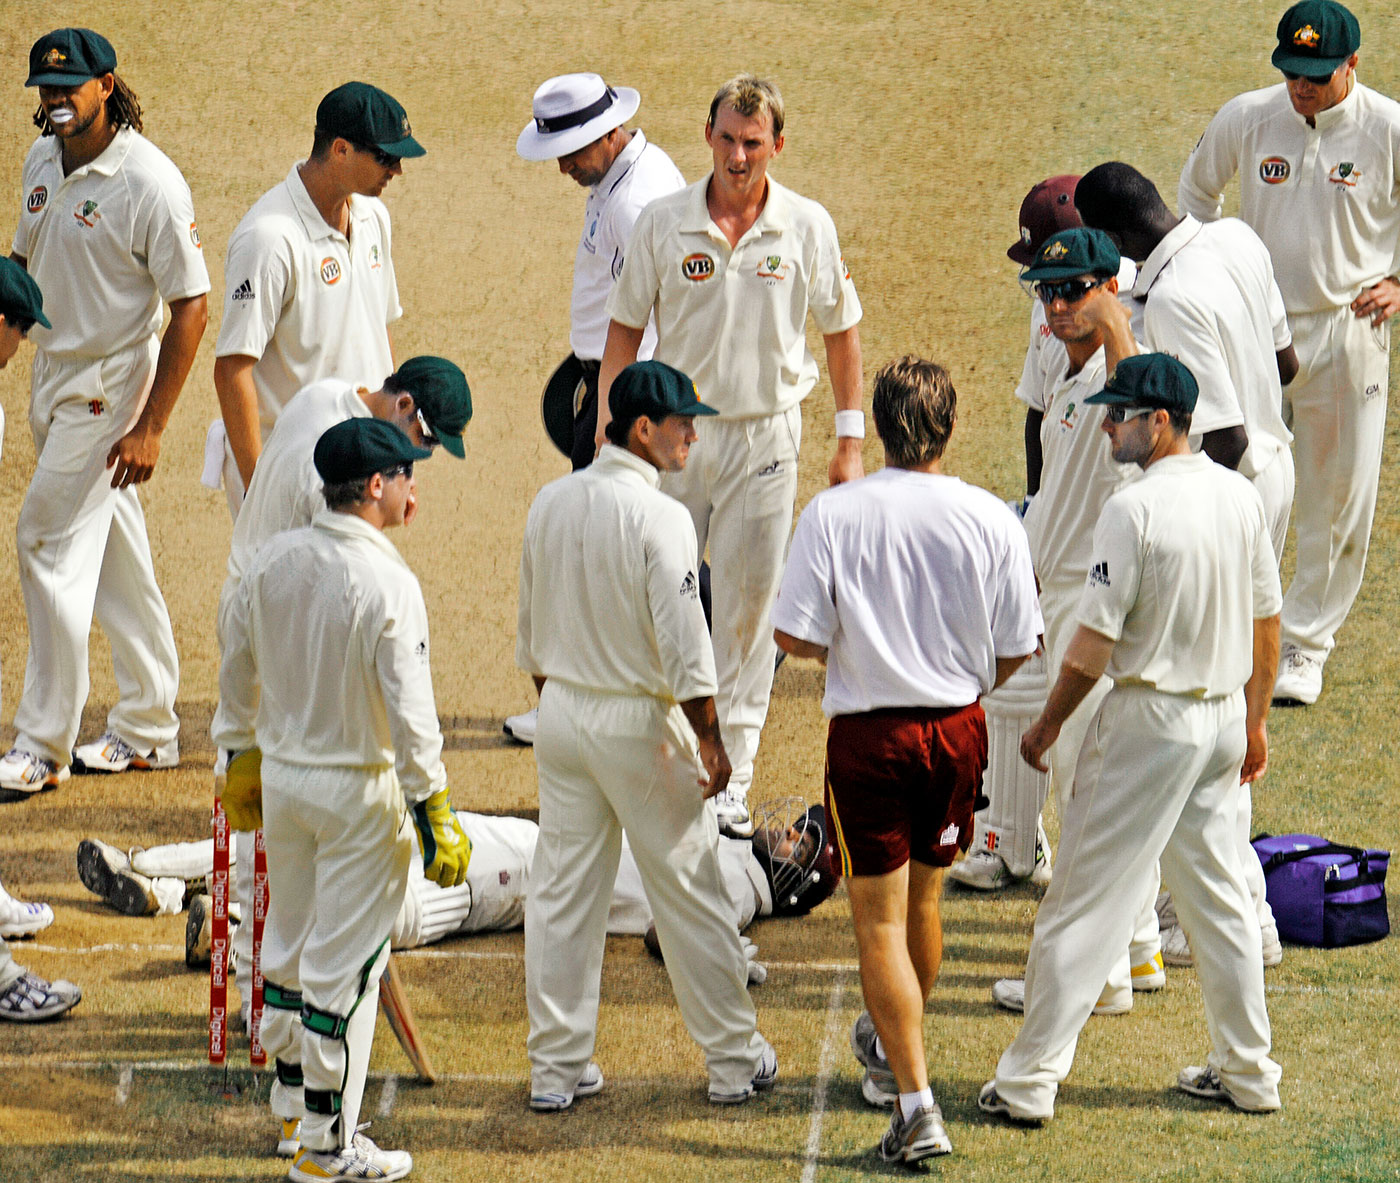 Shivnarine Chanderpaul went numb after being struck by a Lee bouncer in Jamaica in 2008